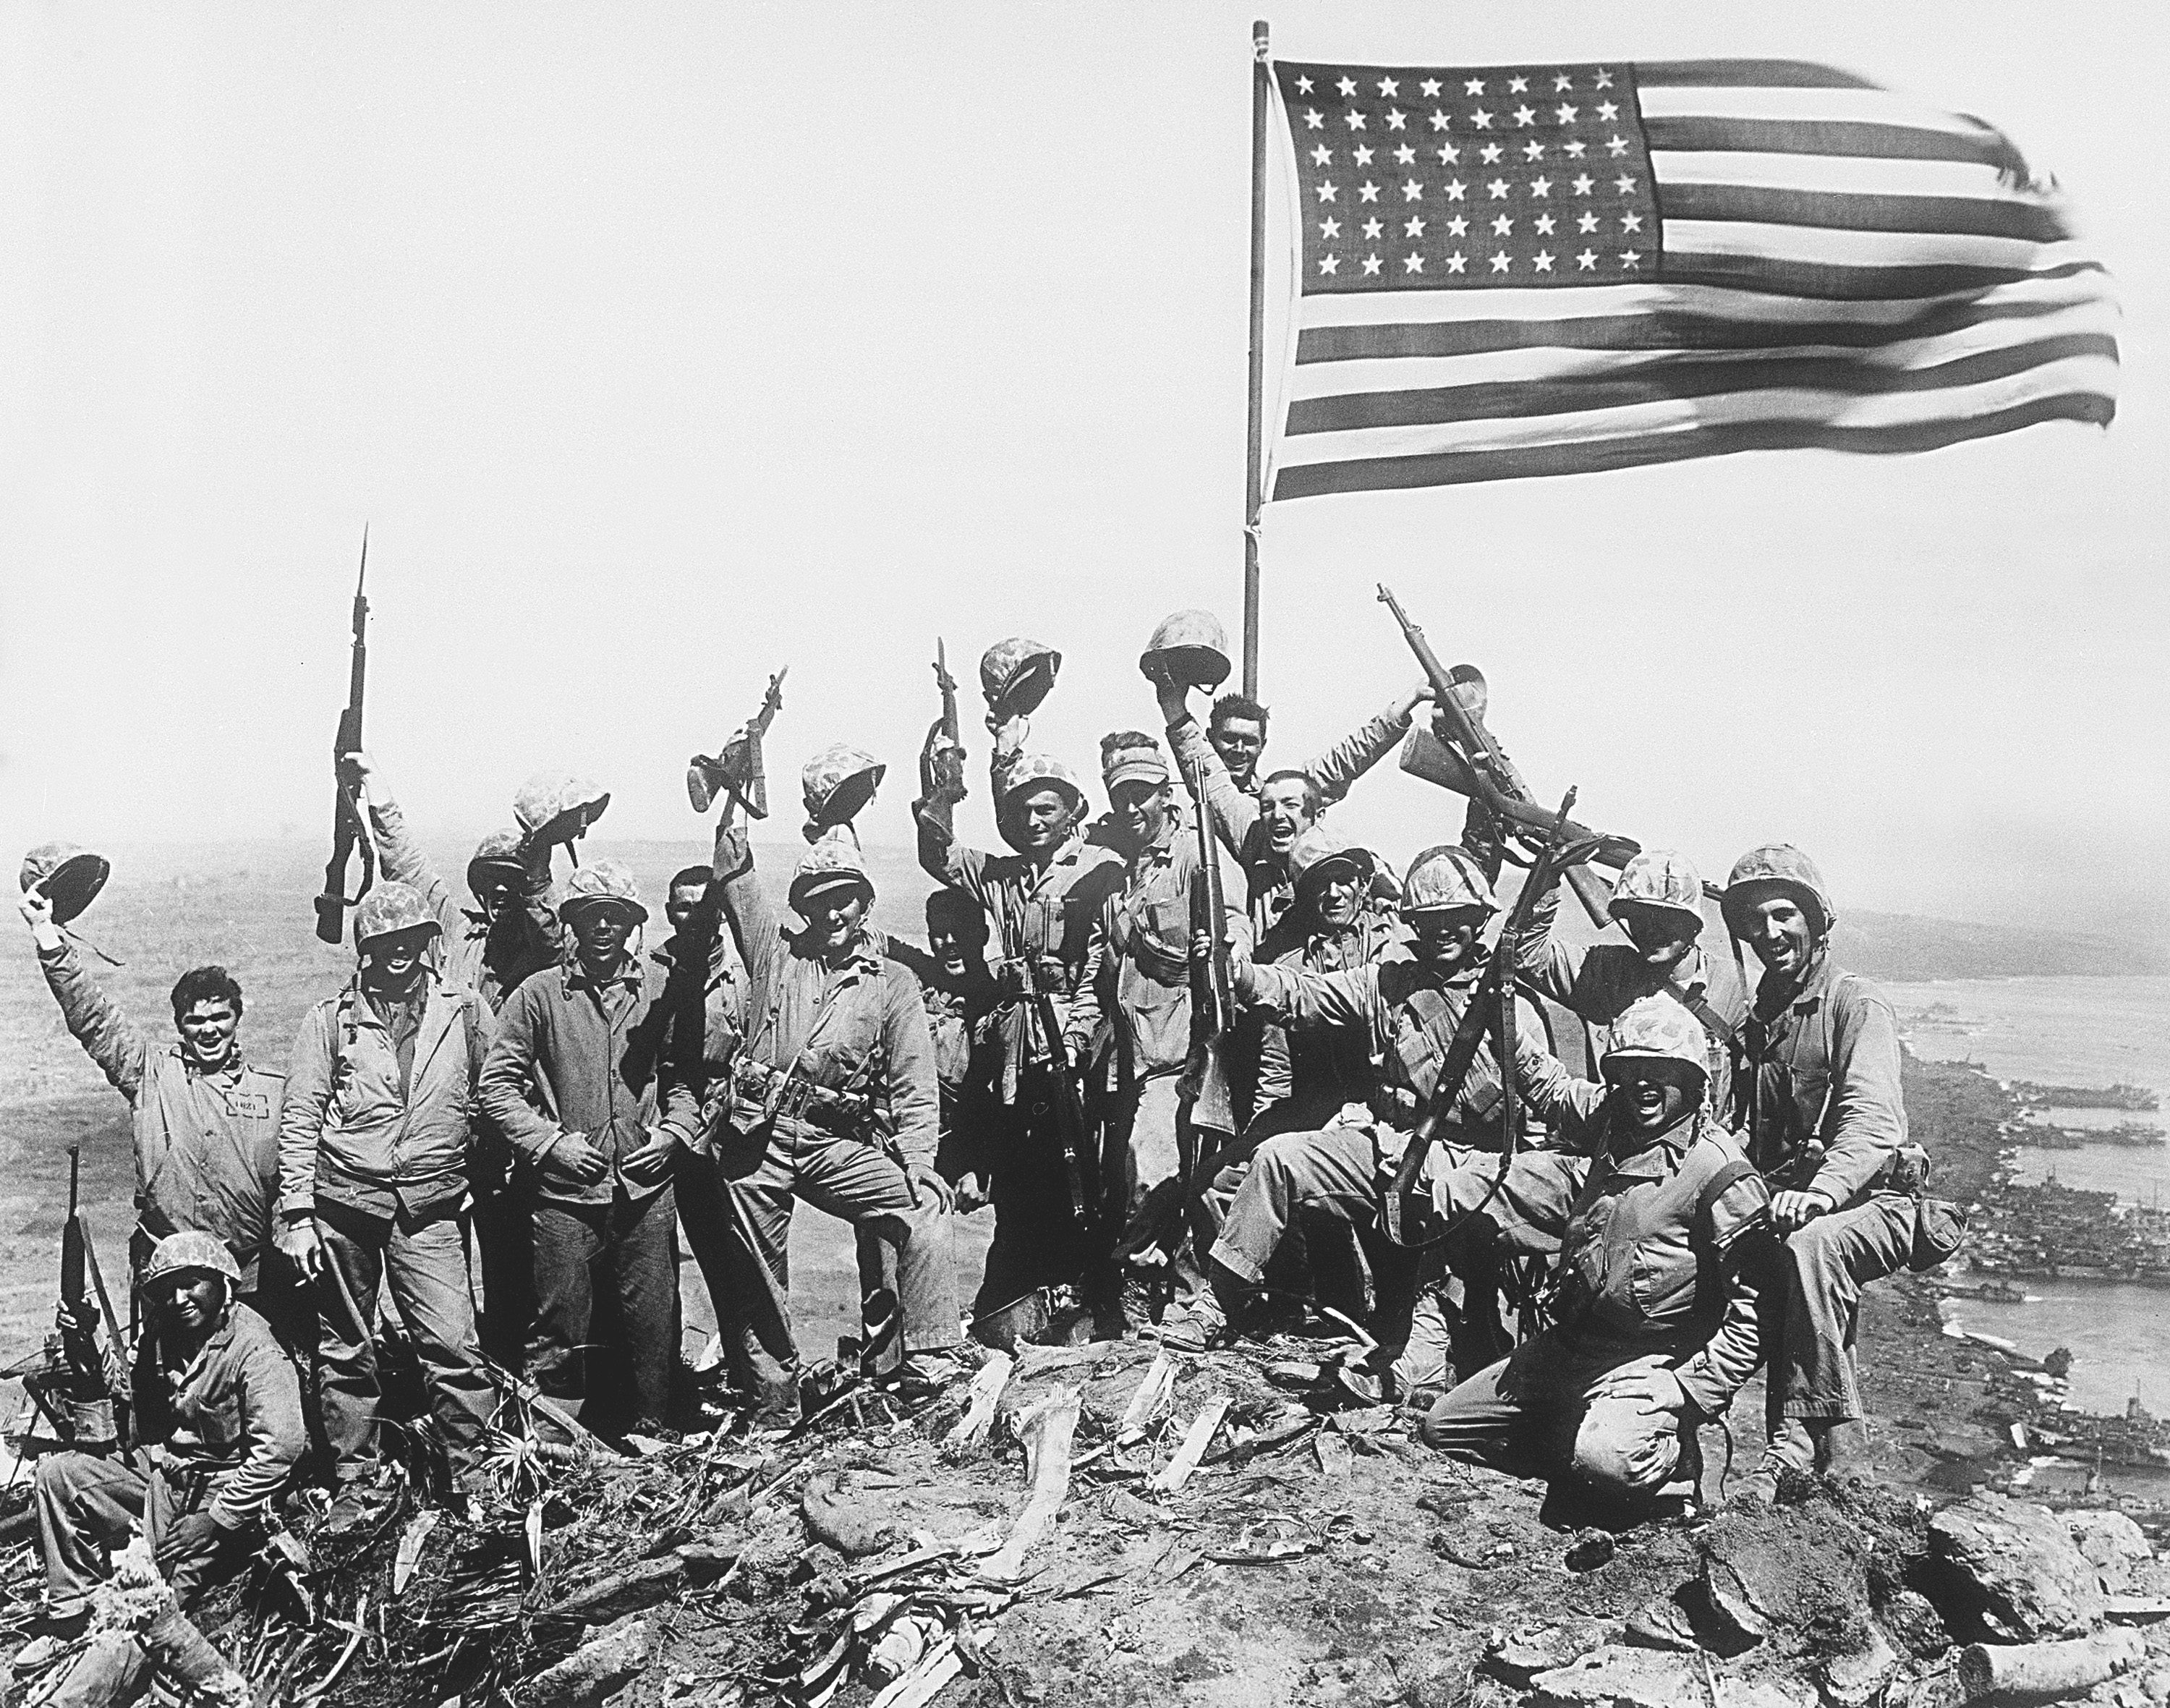 U.S. Marines of the 28th Regiment, fifth division, cheer and hold up their rifles after raising the American flag atop Mount Suribachi on Iwo Jima, a volcanic Japanese island, on Feb. 23, 1945 during World War II.  (AP Photo/Joe Rosenthal)